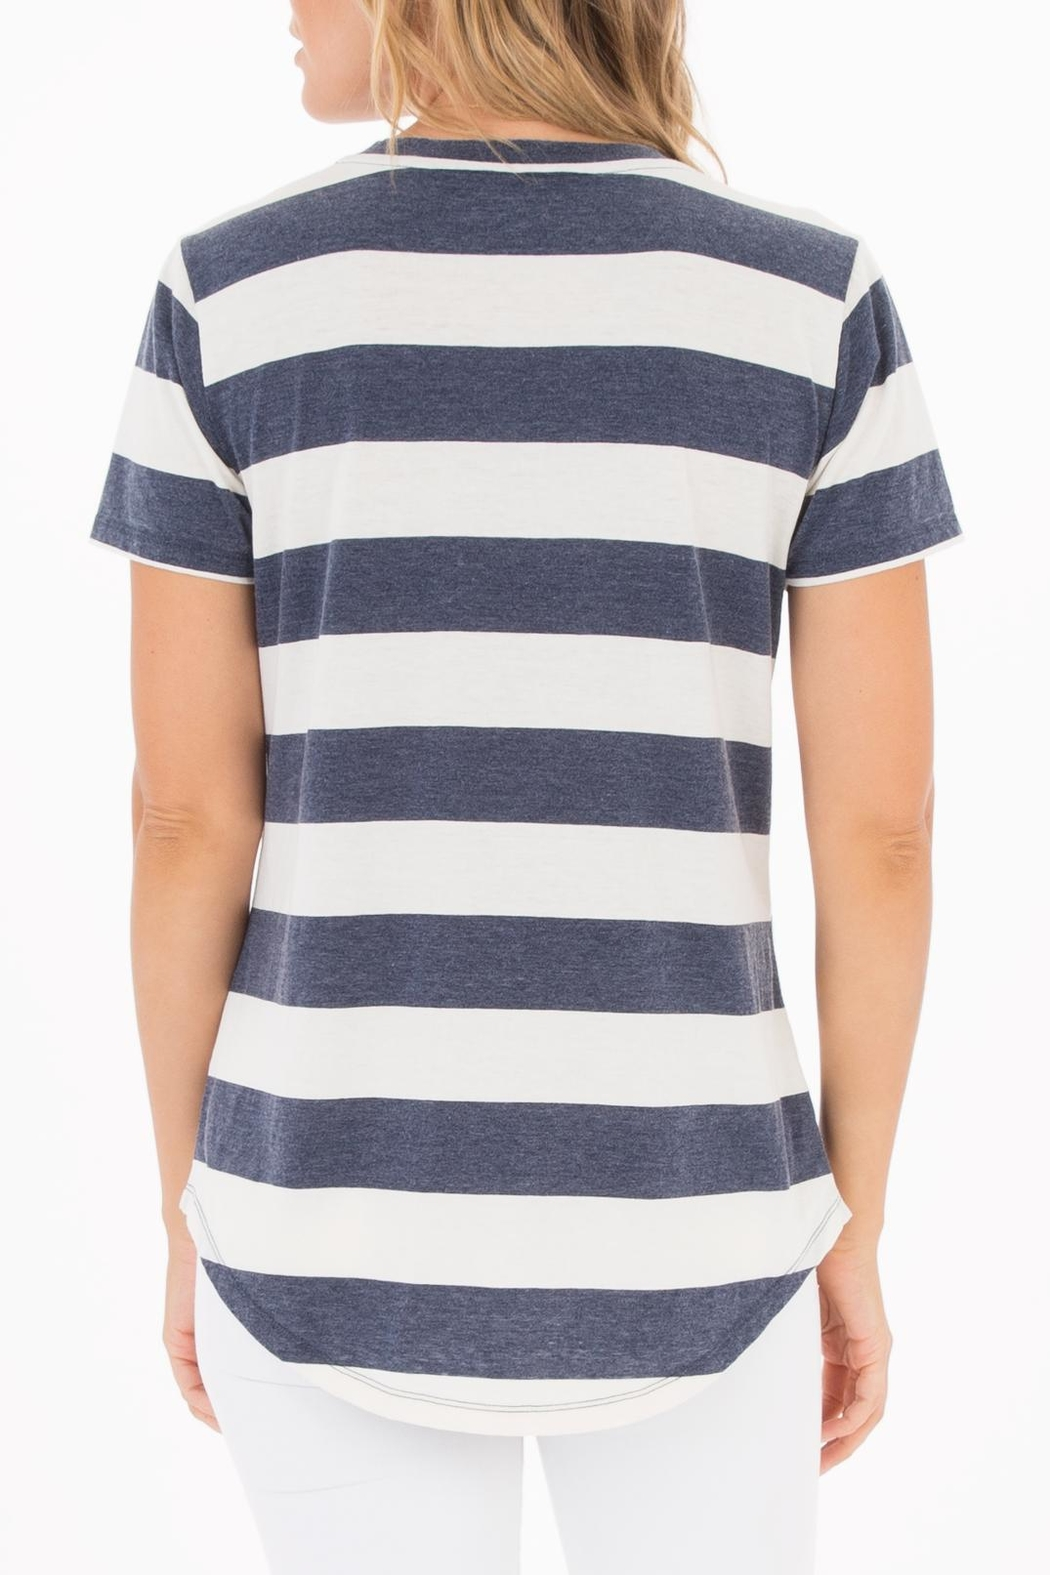 z supply Naples Striped Tee - Front Full Image